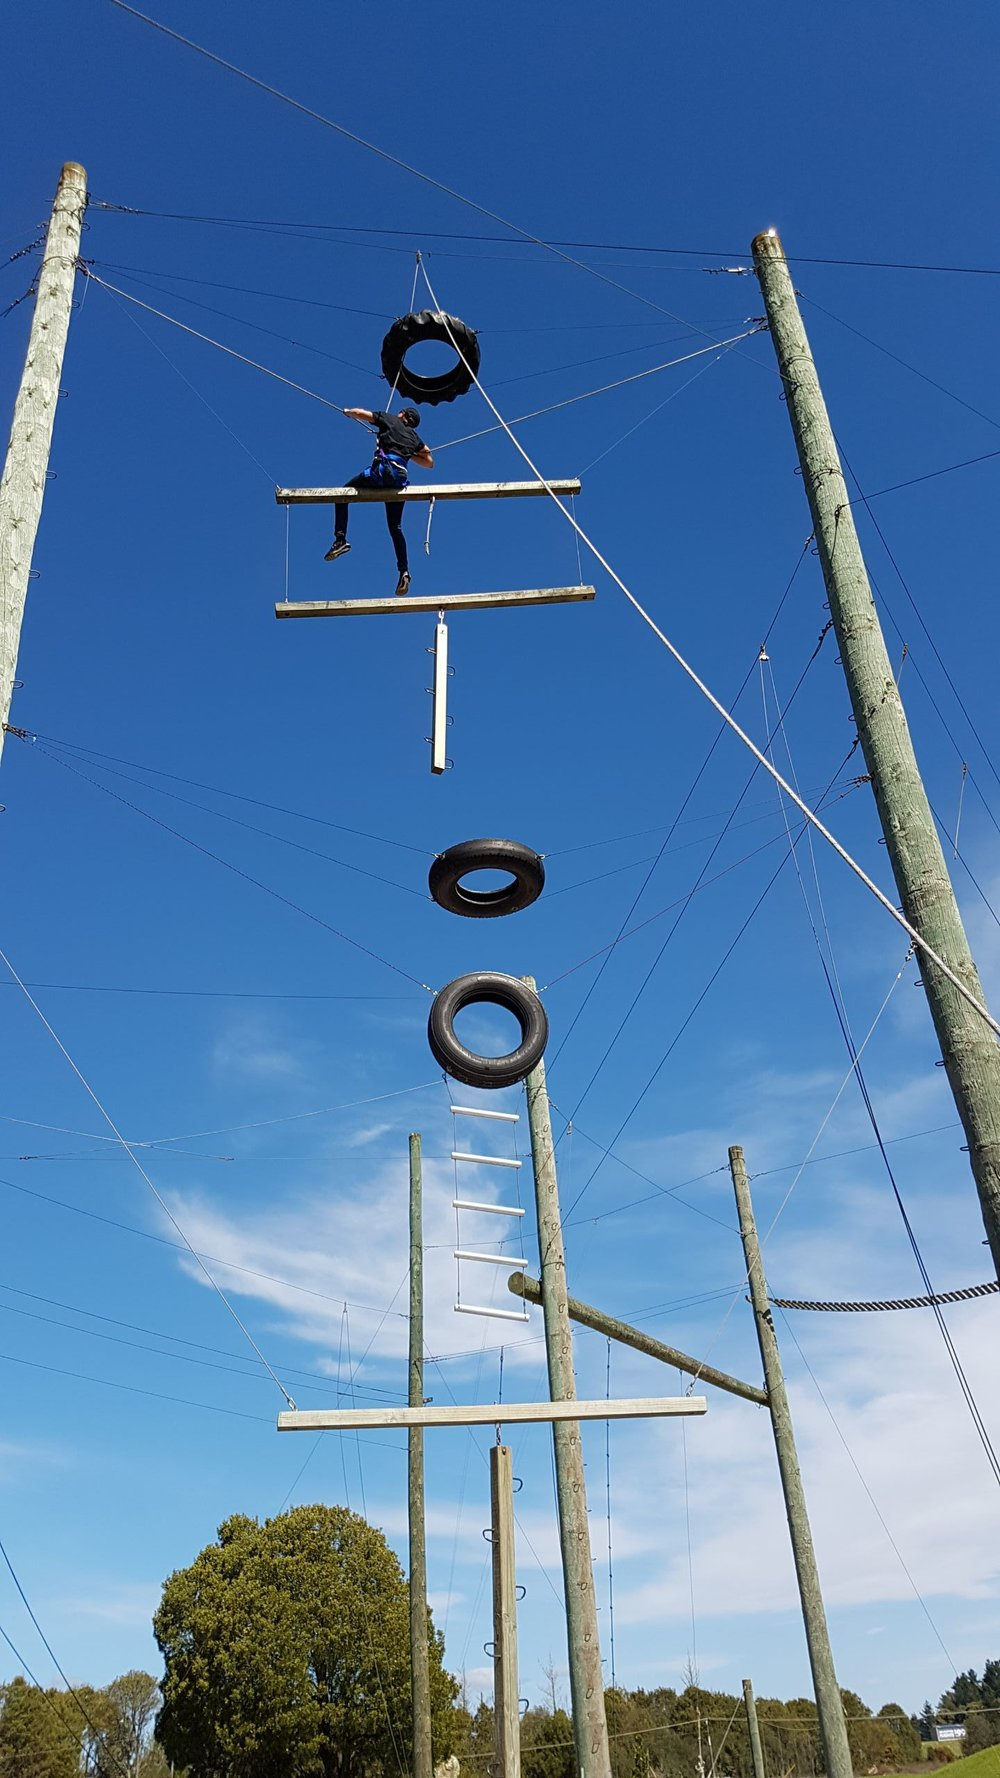 Challenge yourself at Rock 'n Ropes